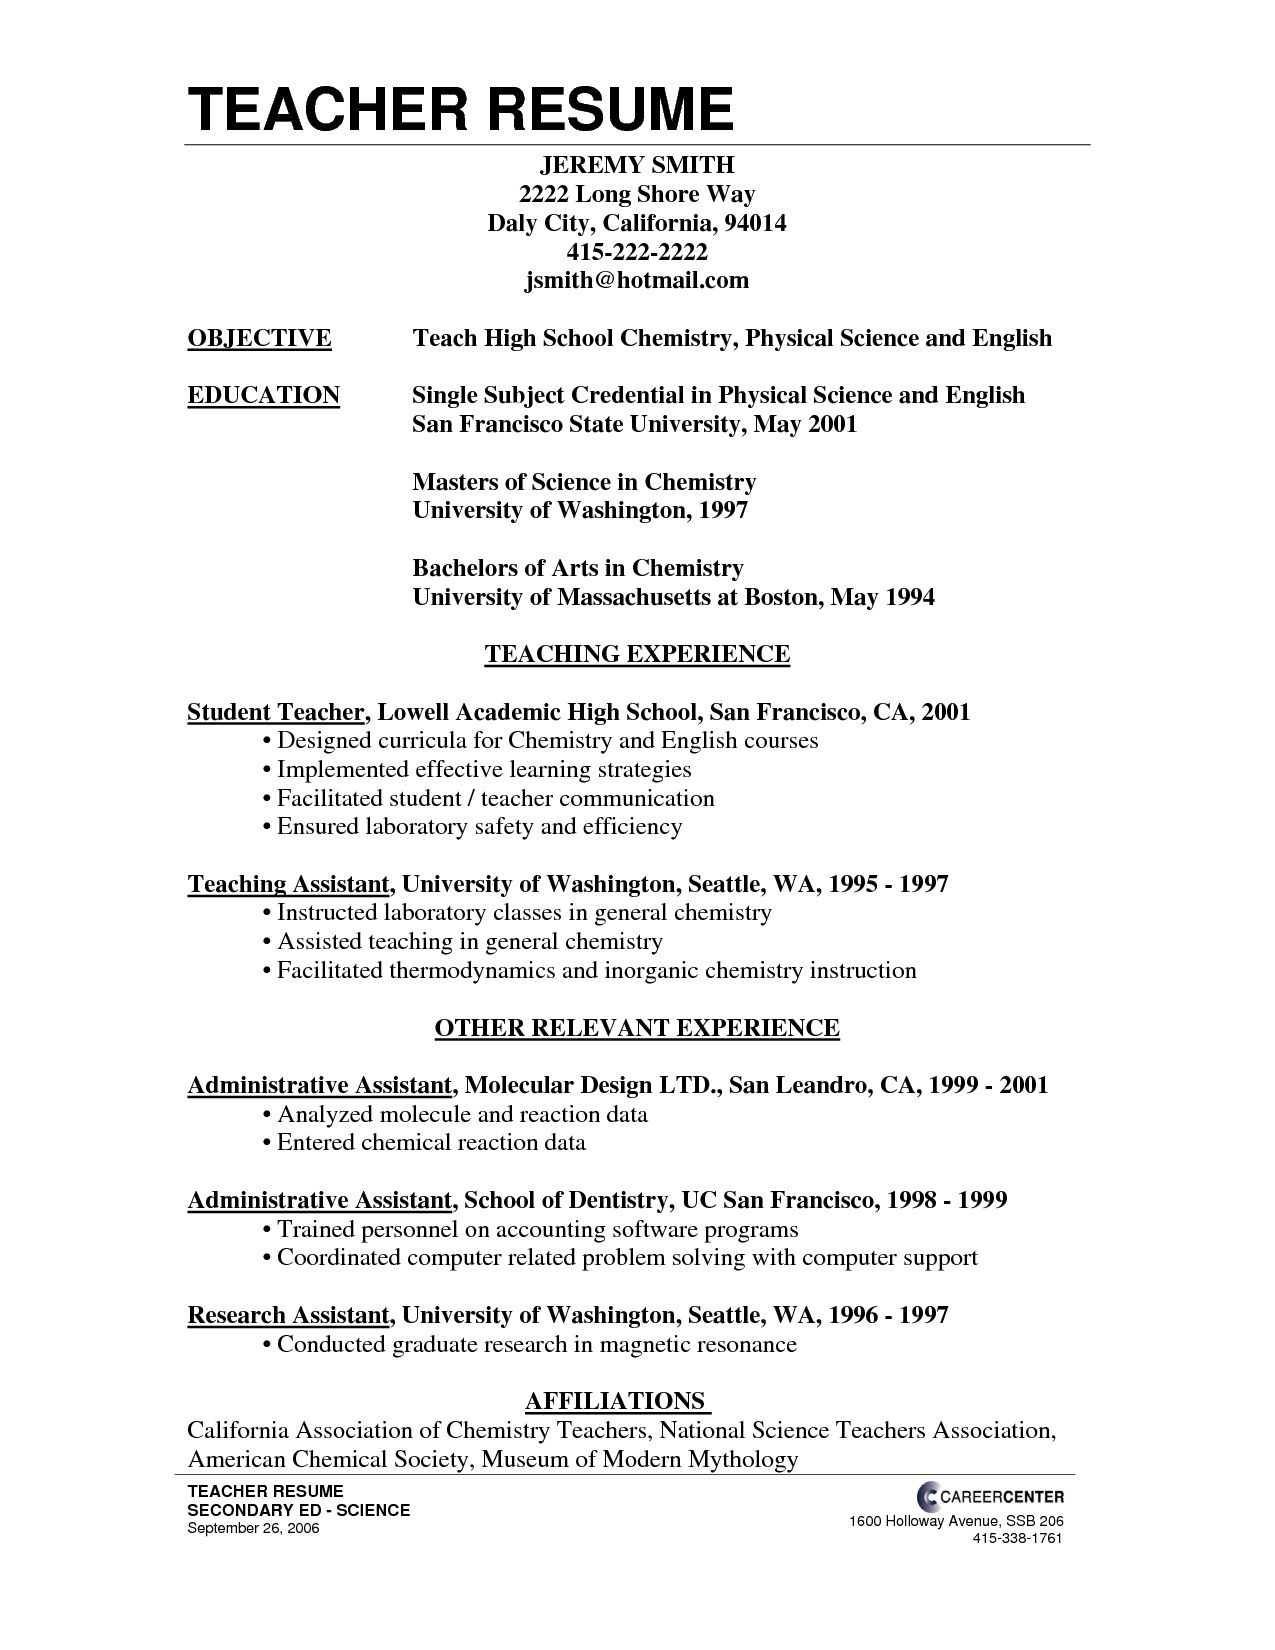 high school teacher resume jobresumesample com 547 high teachers cv teachers professional résumés works education professionals to create dynamic job applications and prepare for interview